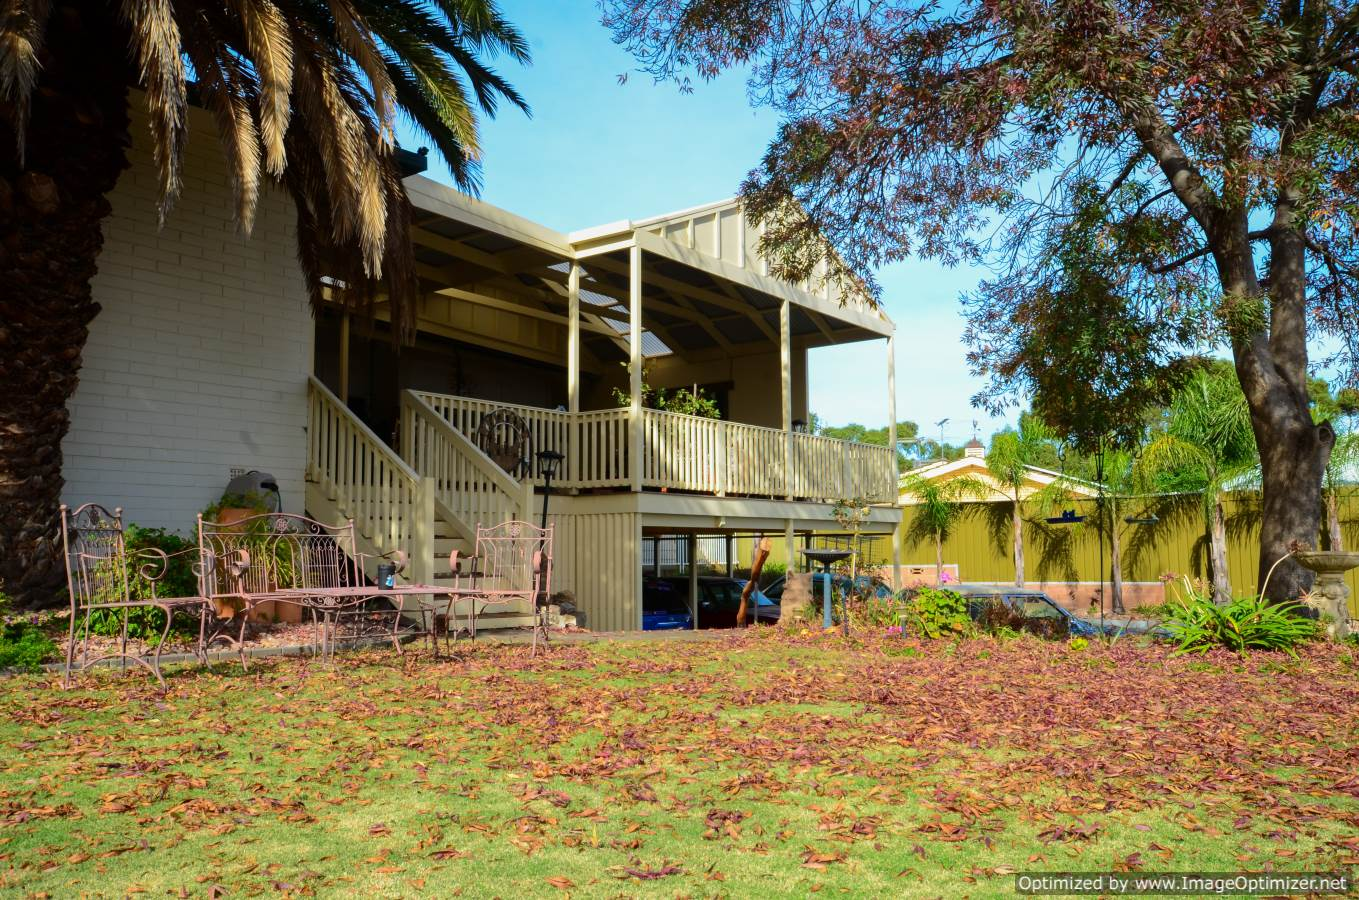 Cooinda View Bed & Breakfast